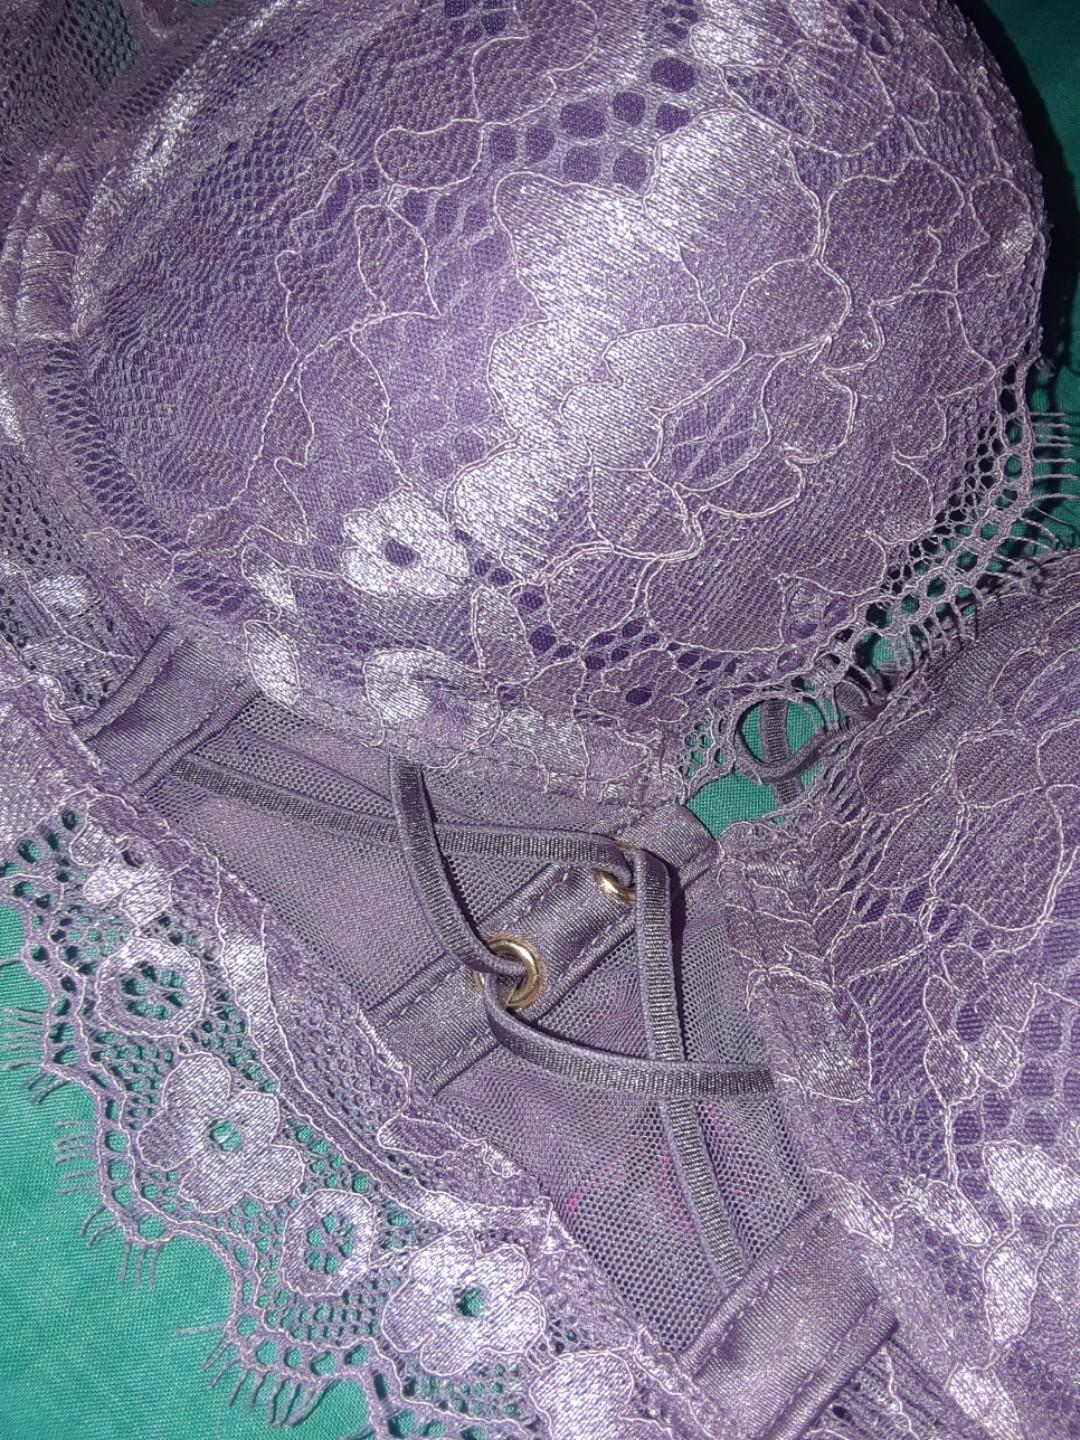 Victoria's secret purple mauve lace longline lingerie 34A bra lot x2 never worn